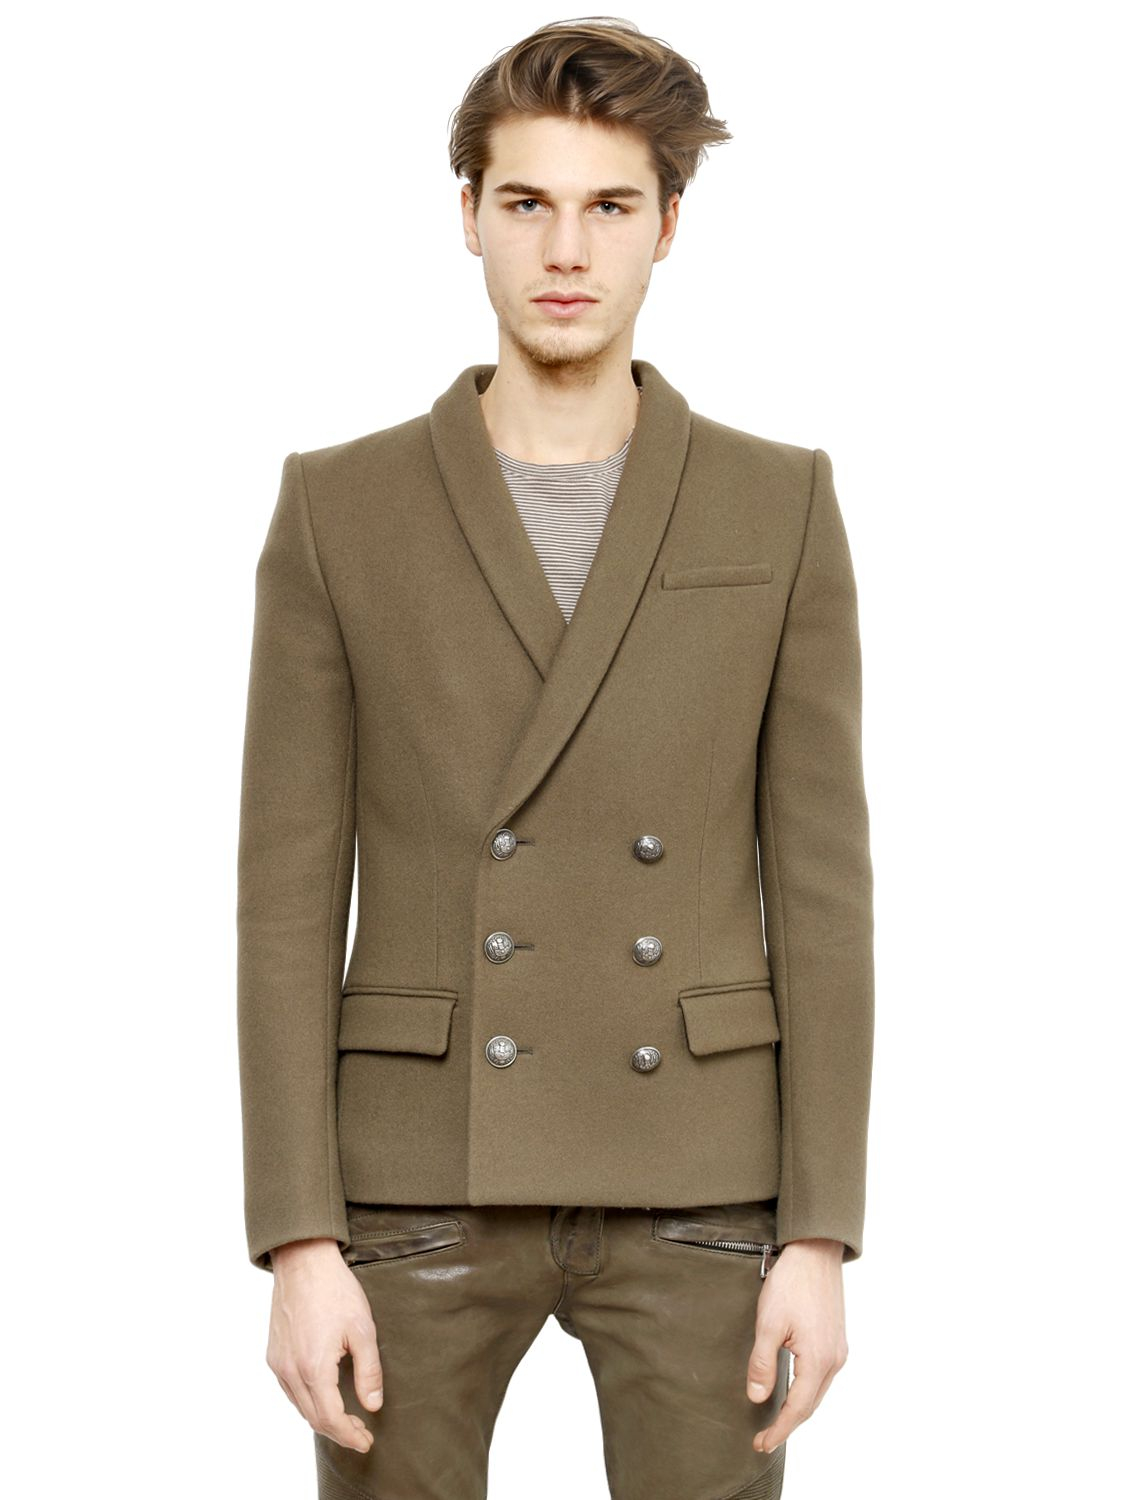 Balmain Double Breasted Blazer | Balmain Henley | Balmain Double Breasted Jacket